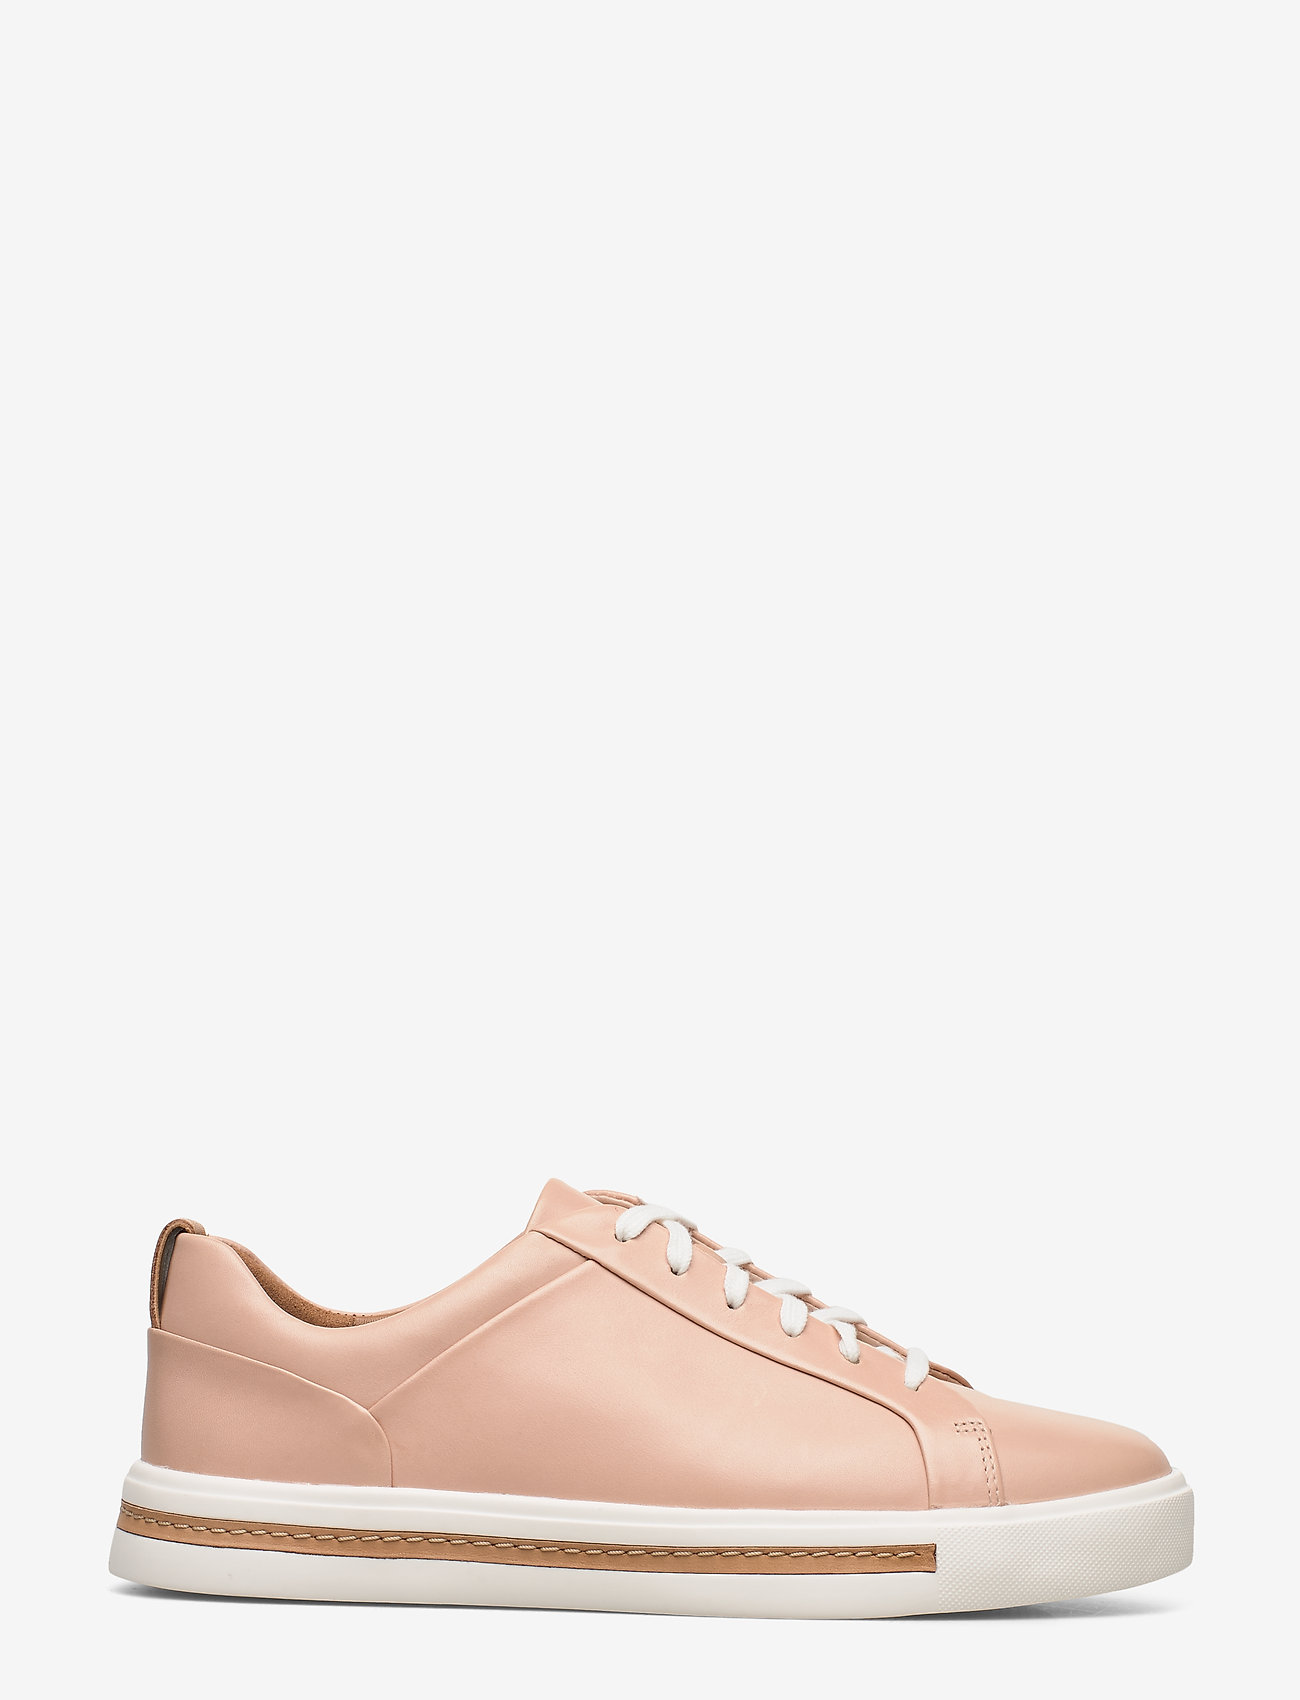 Clarks - Un Maui Lace - låga sneakers - nude leather - 1